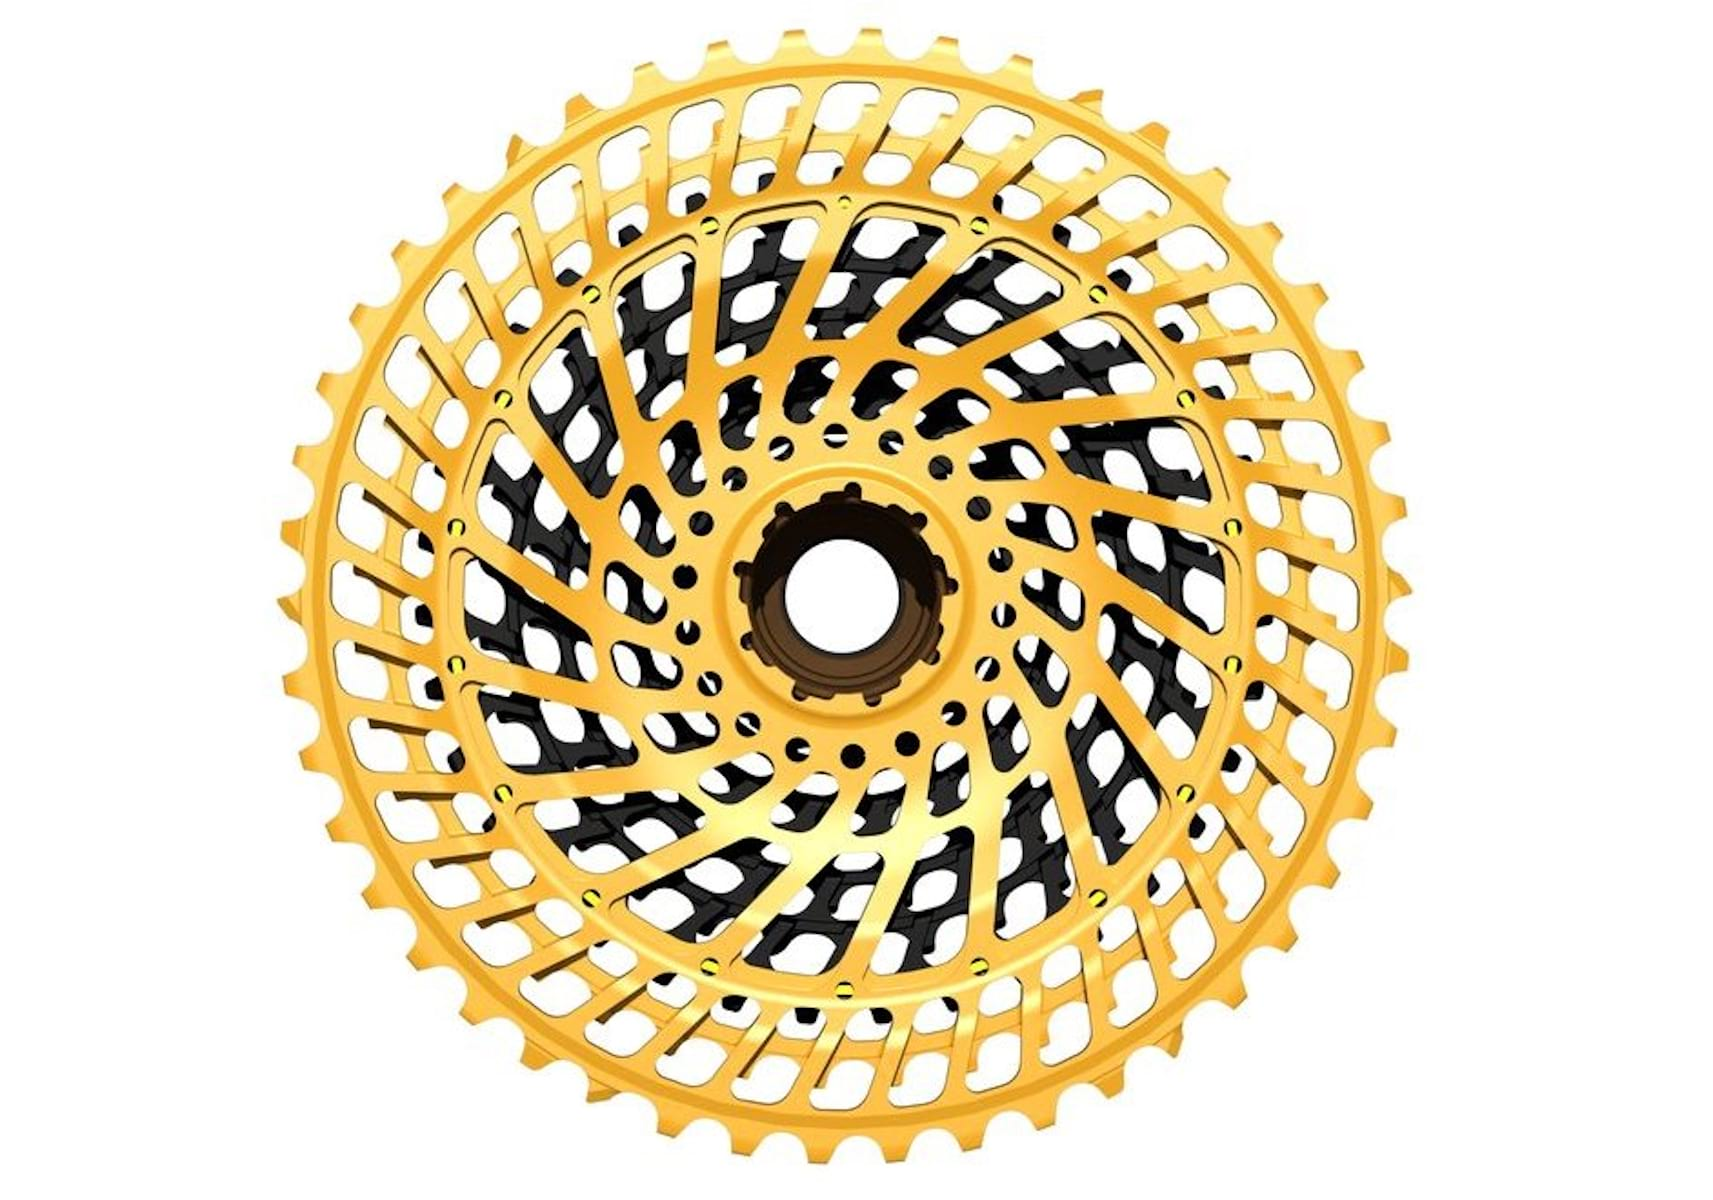 and 12 speed ZTTO Bicycle Cassette Lock Ring Fits on all SRAM//Shimano 9,10,11